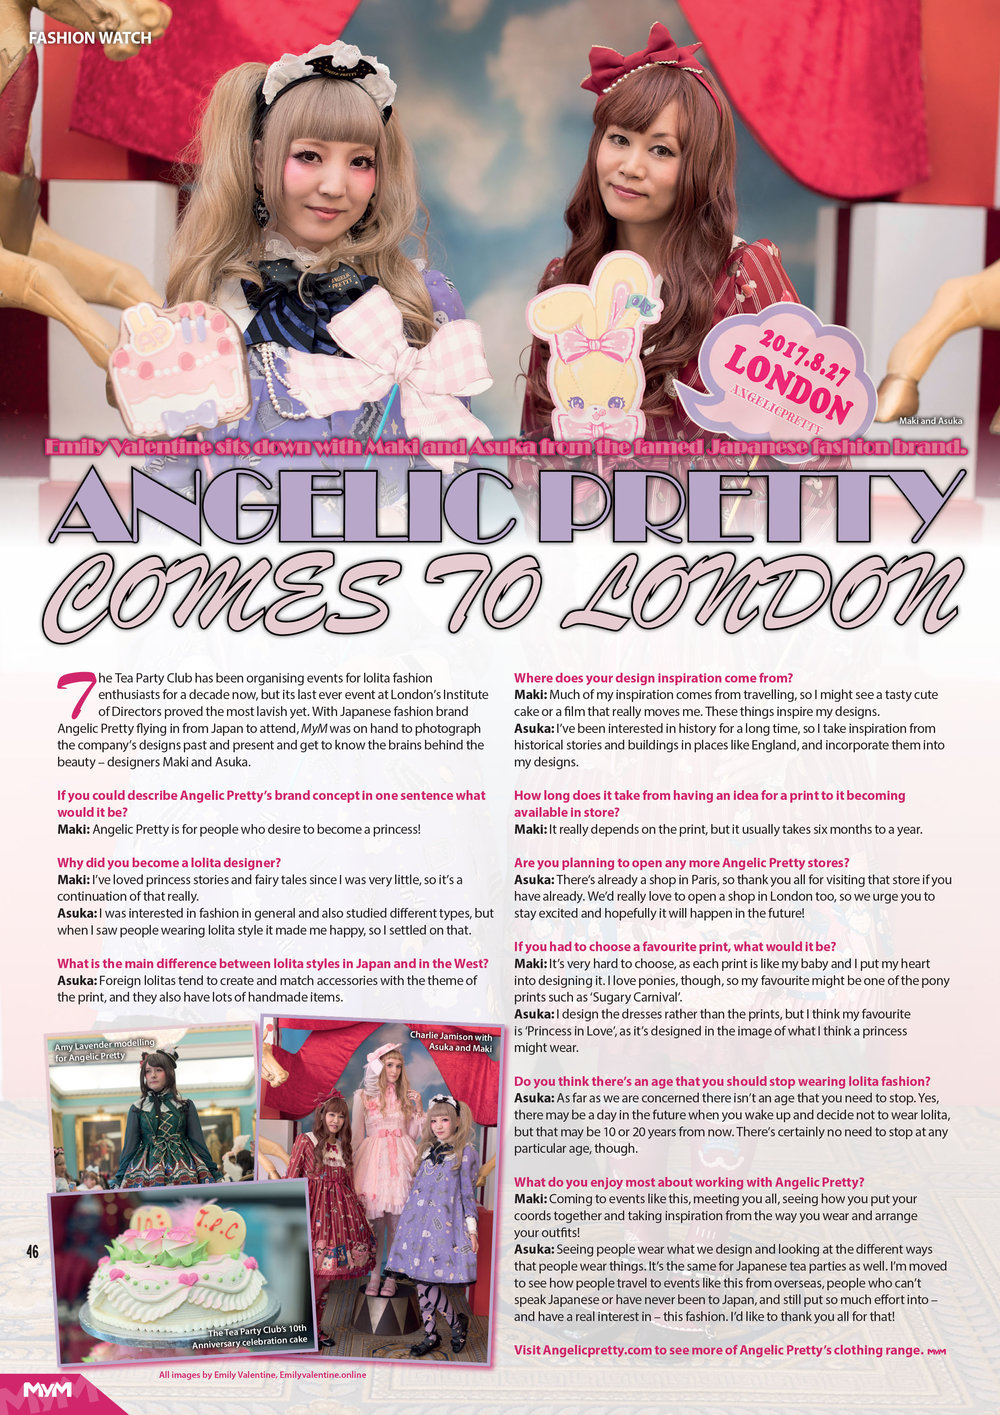 Interview with Japanese Fashion Brand Angelic Pretty